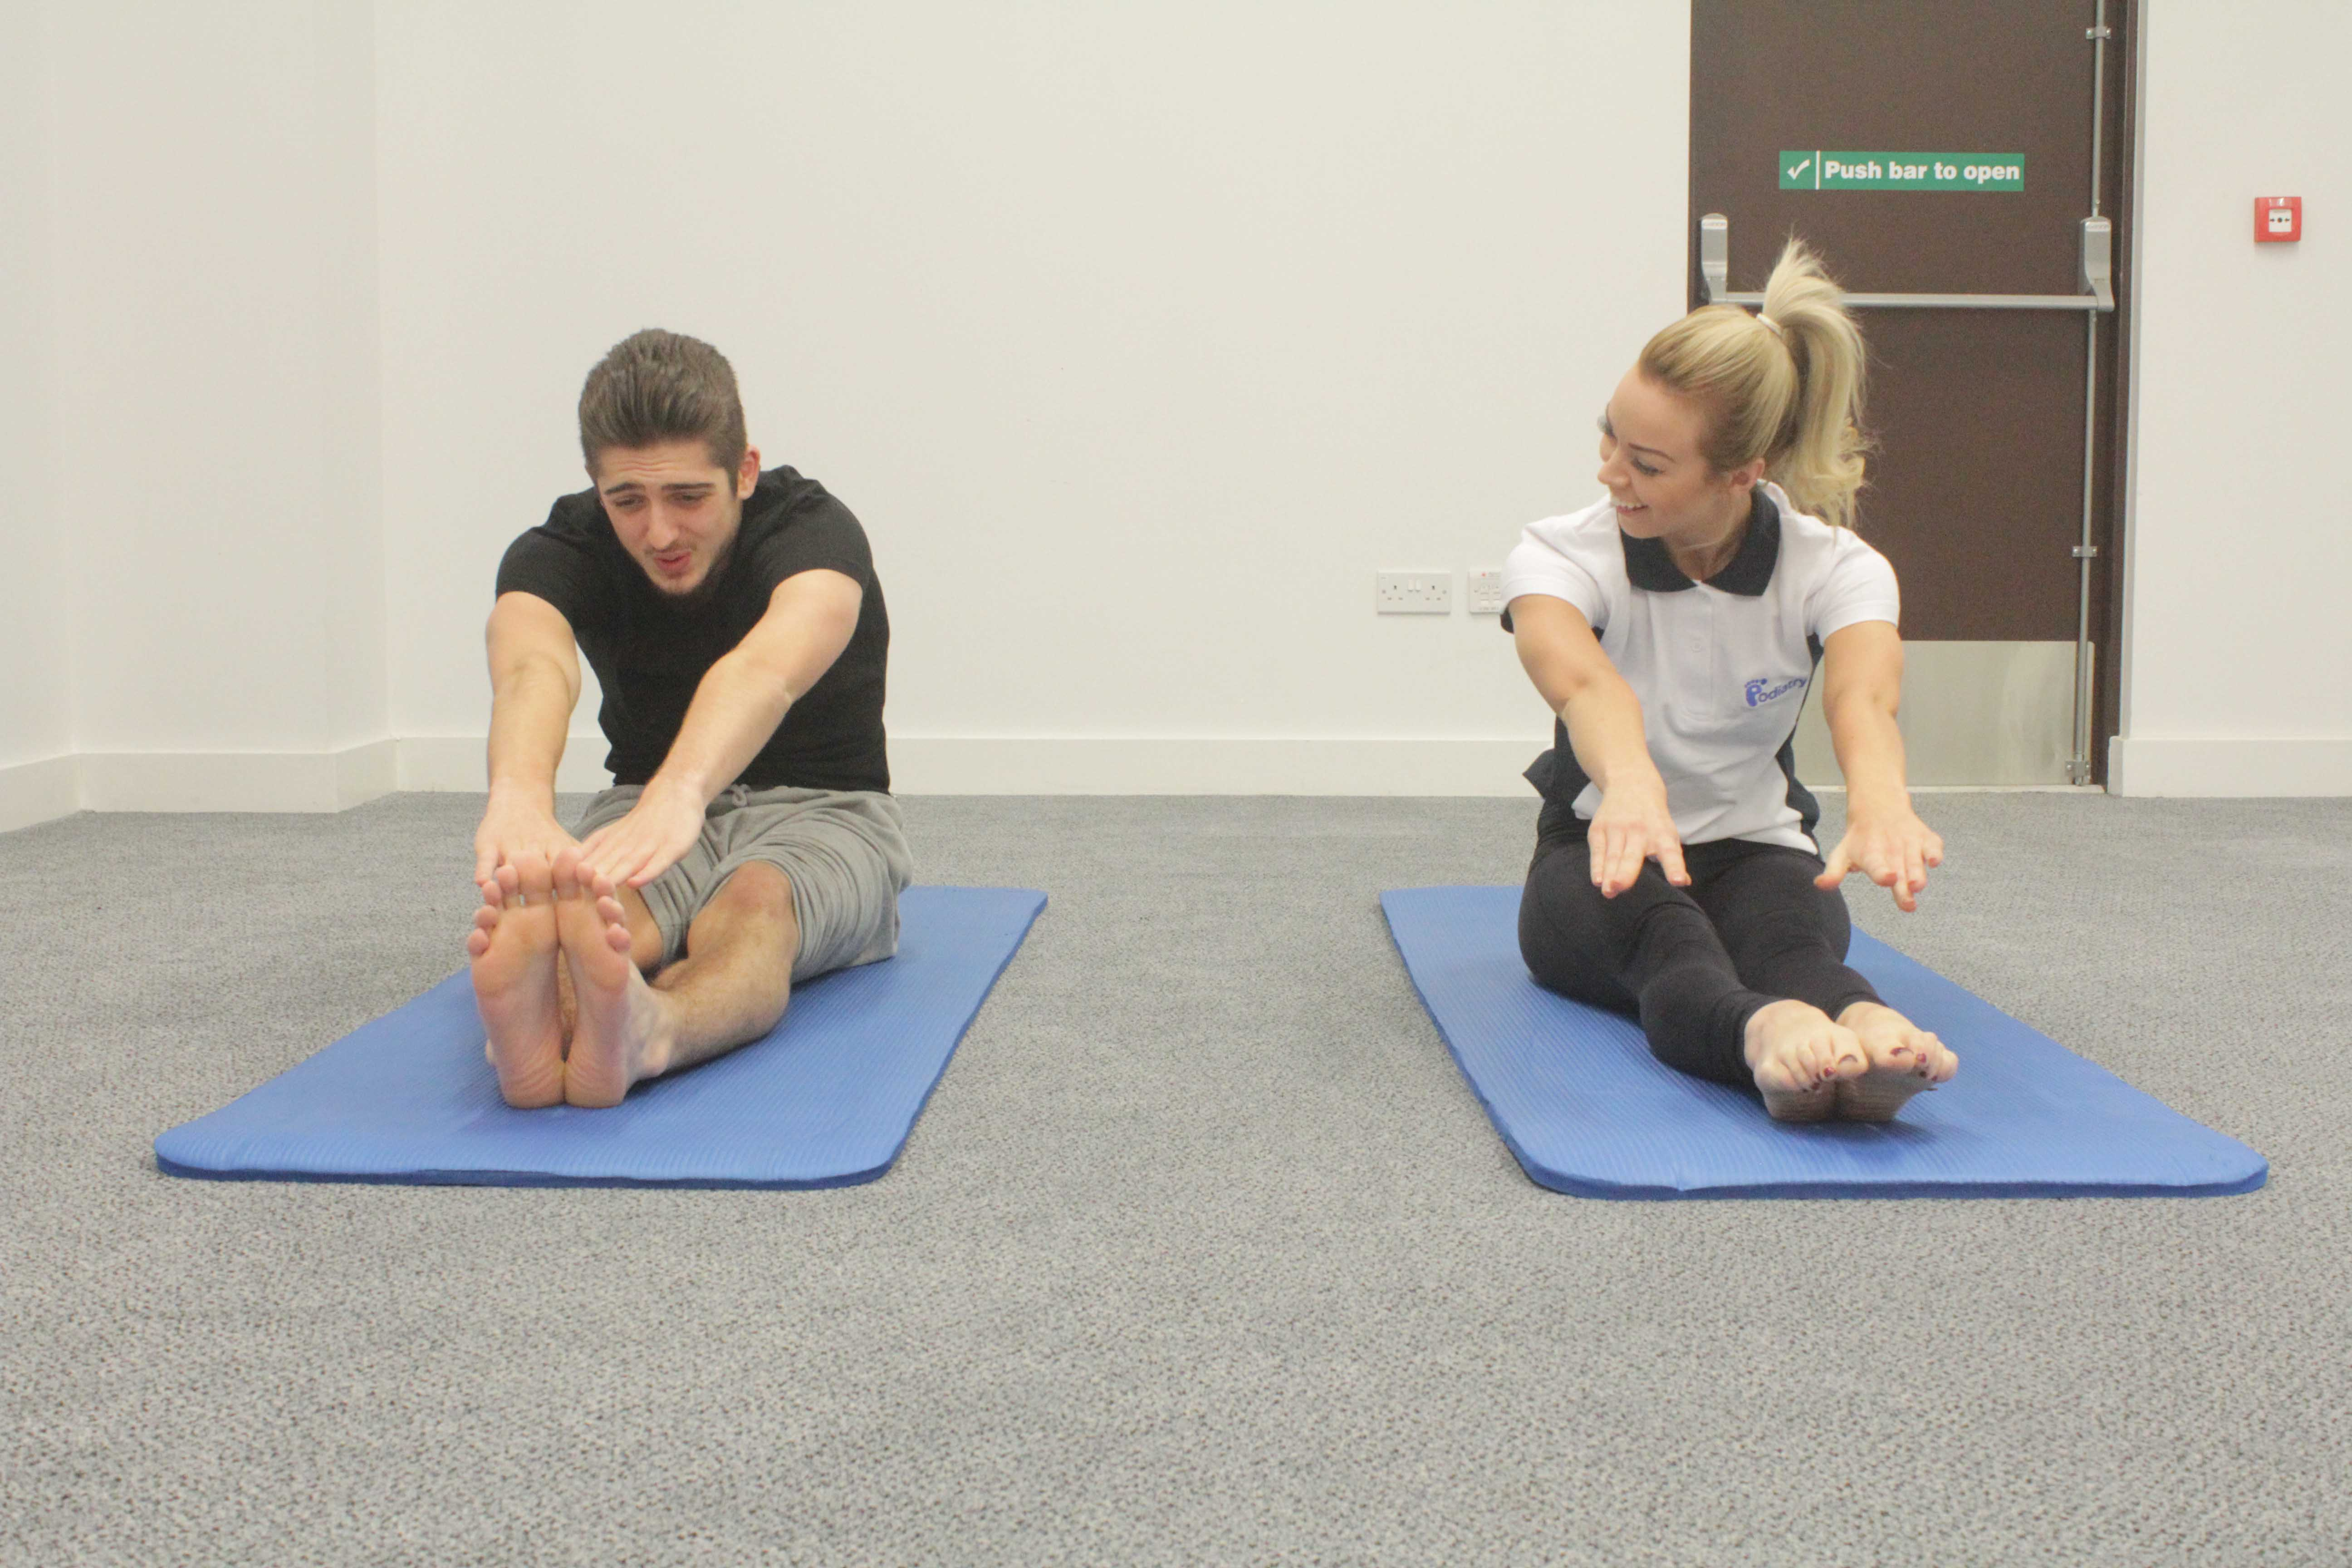 Stetch exercises using a resistance band, guided by a specialist paediatric physiotherapist